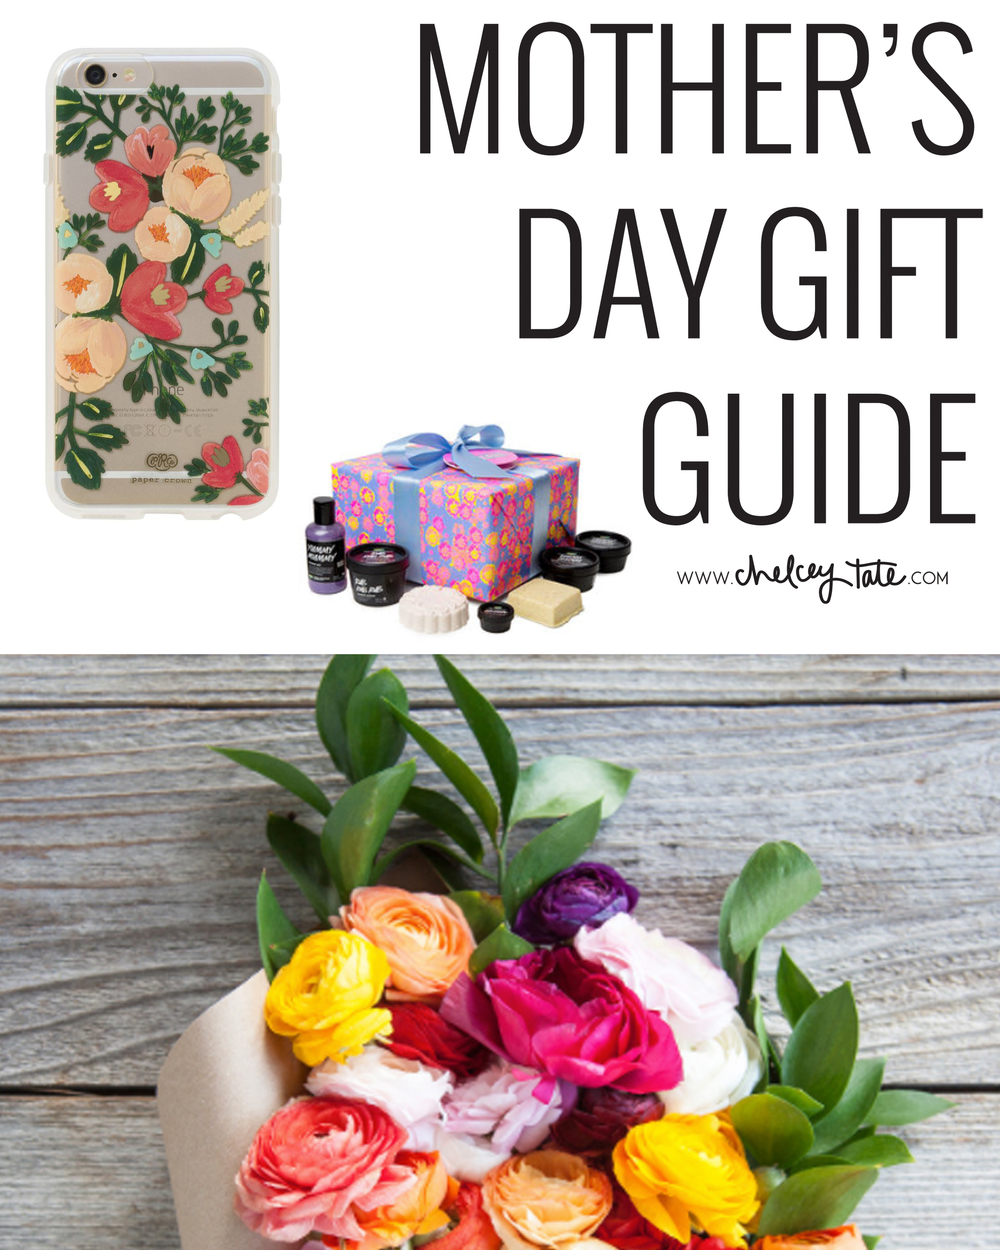 Mother's Day Gift Guide chelceytate.com